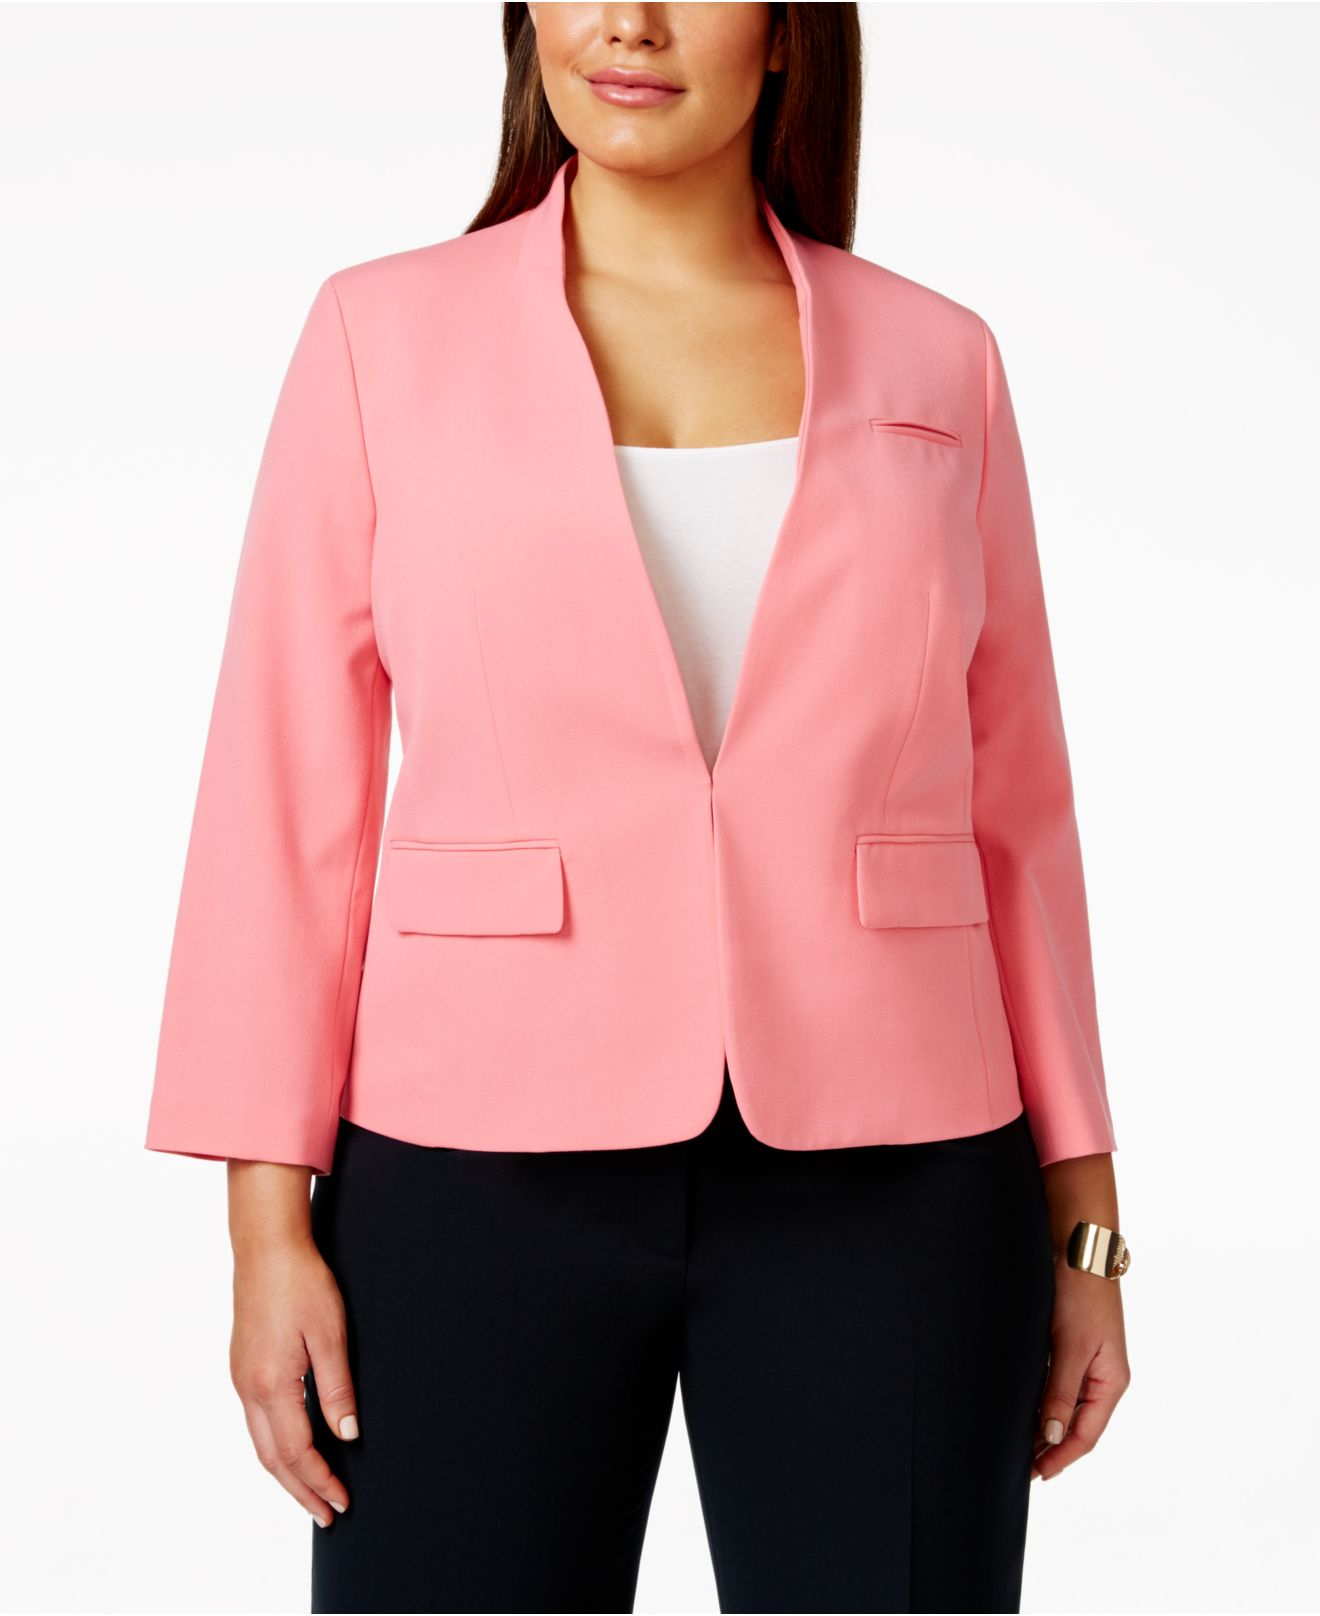 Nine west Plus Size Collarless Long-sleeve Suit Jacket in Pink | Lyst